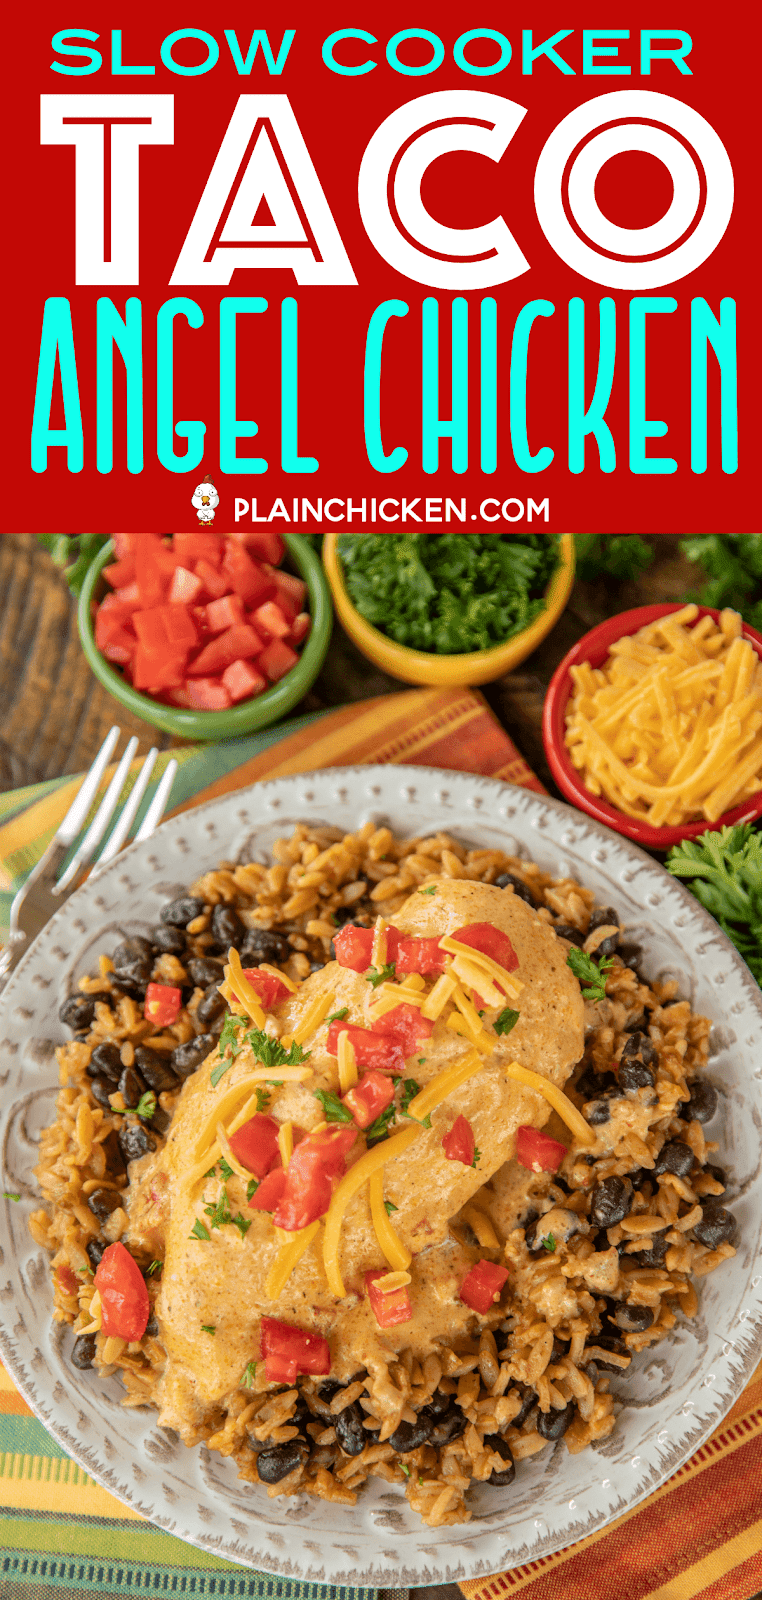 Slow Cooker Taco Chicken Chicken - a weeknight family favorite!! Only 6 ingredients! Chicken, cream cheese, cream of chicken soup, chicken broth, taco seasoning and Rotel diced tomatoes and green chiles. Serve over Mexican rice and black beans, pasta, grits, rice or potatoes. Everyone cleaned their plate and asked for seconds! That never happens!!! This recipe is a keeper! #slowcooker #chicken #weeknightdinner #mexican #mexicanchicken #crockpot